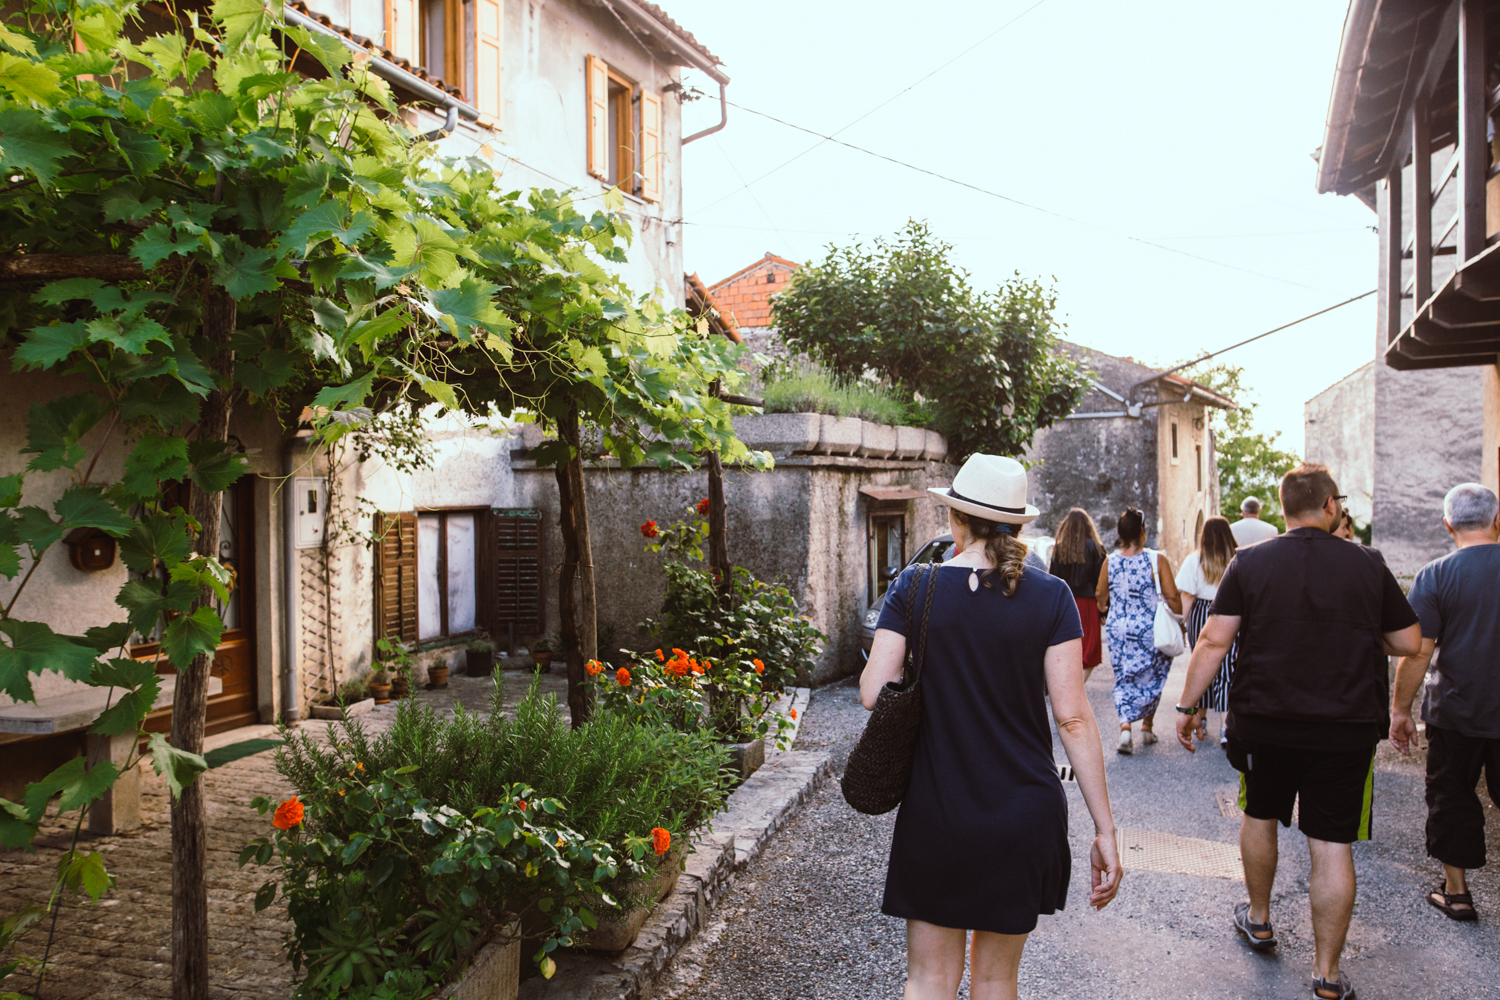 Štanjel – a guided tour of the village